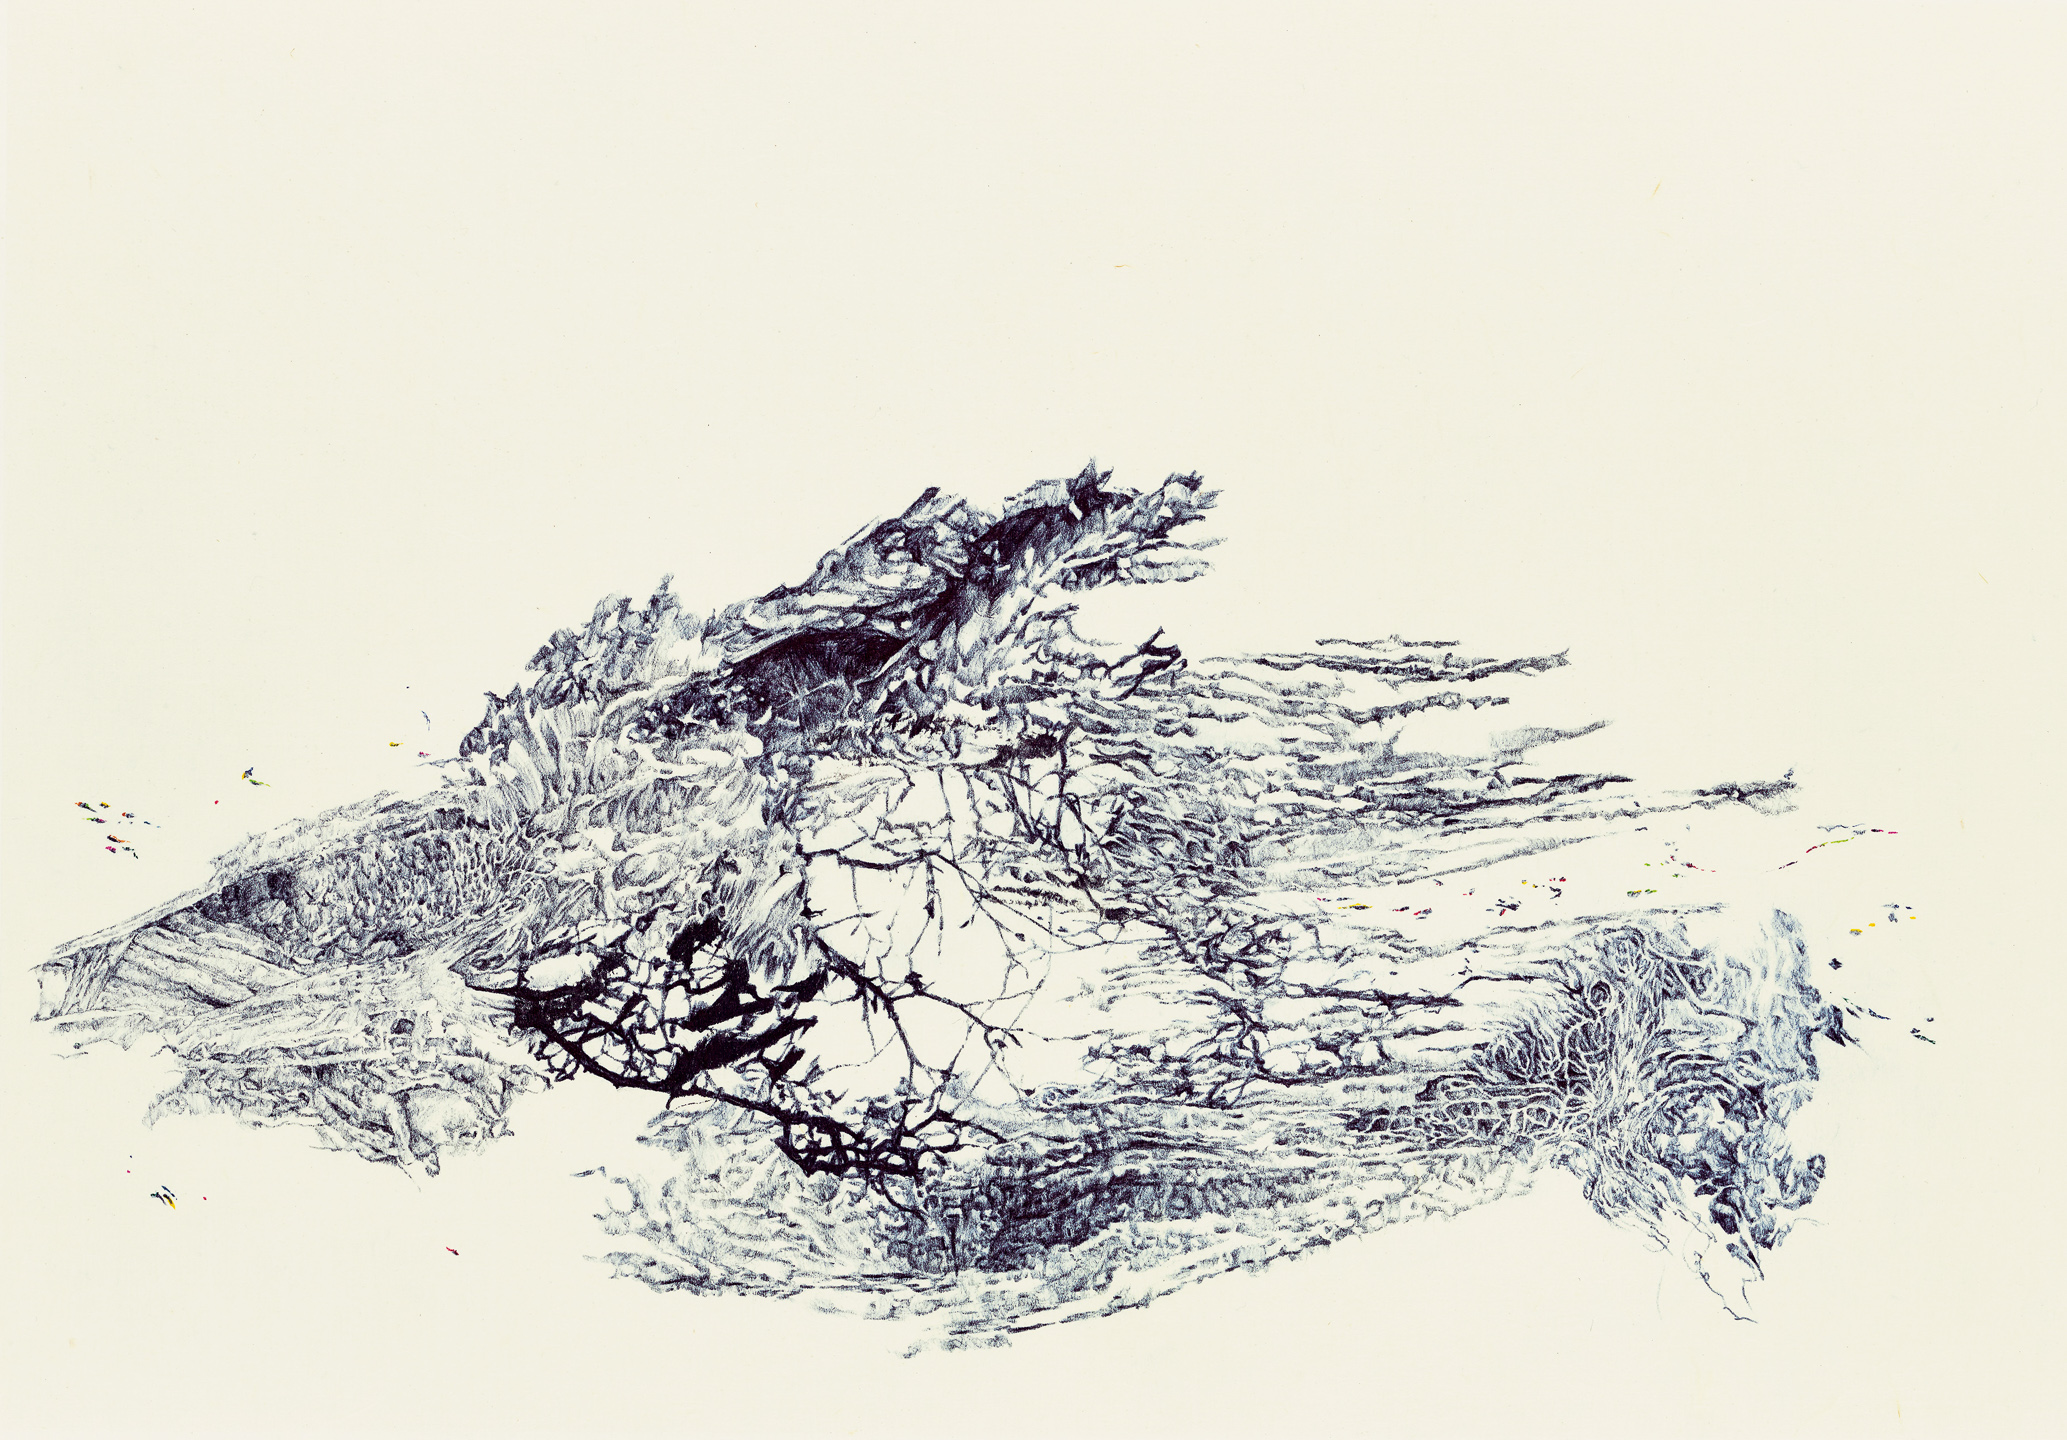 A moment of truth 37, ball pen on paper, 27cm (height) x 38.5cm (width), 2014